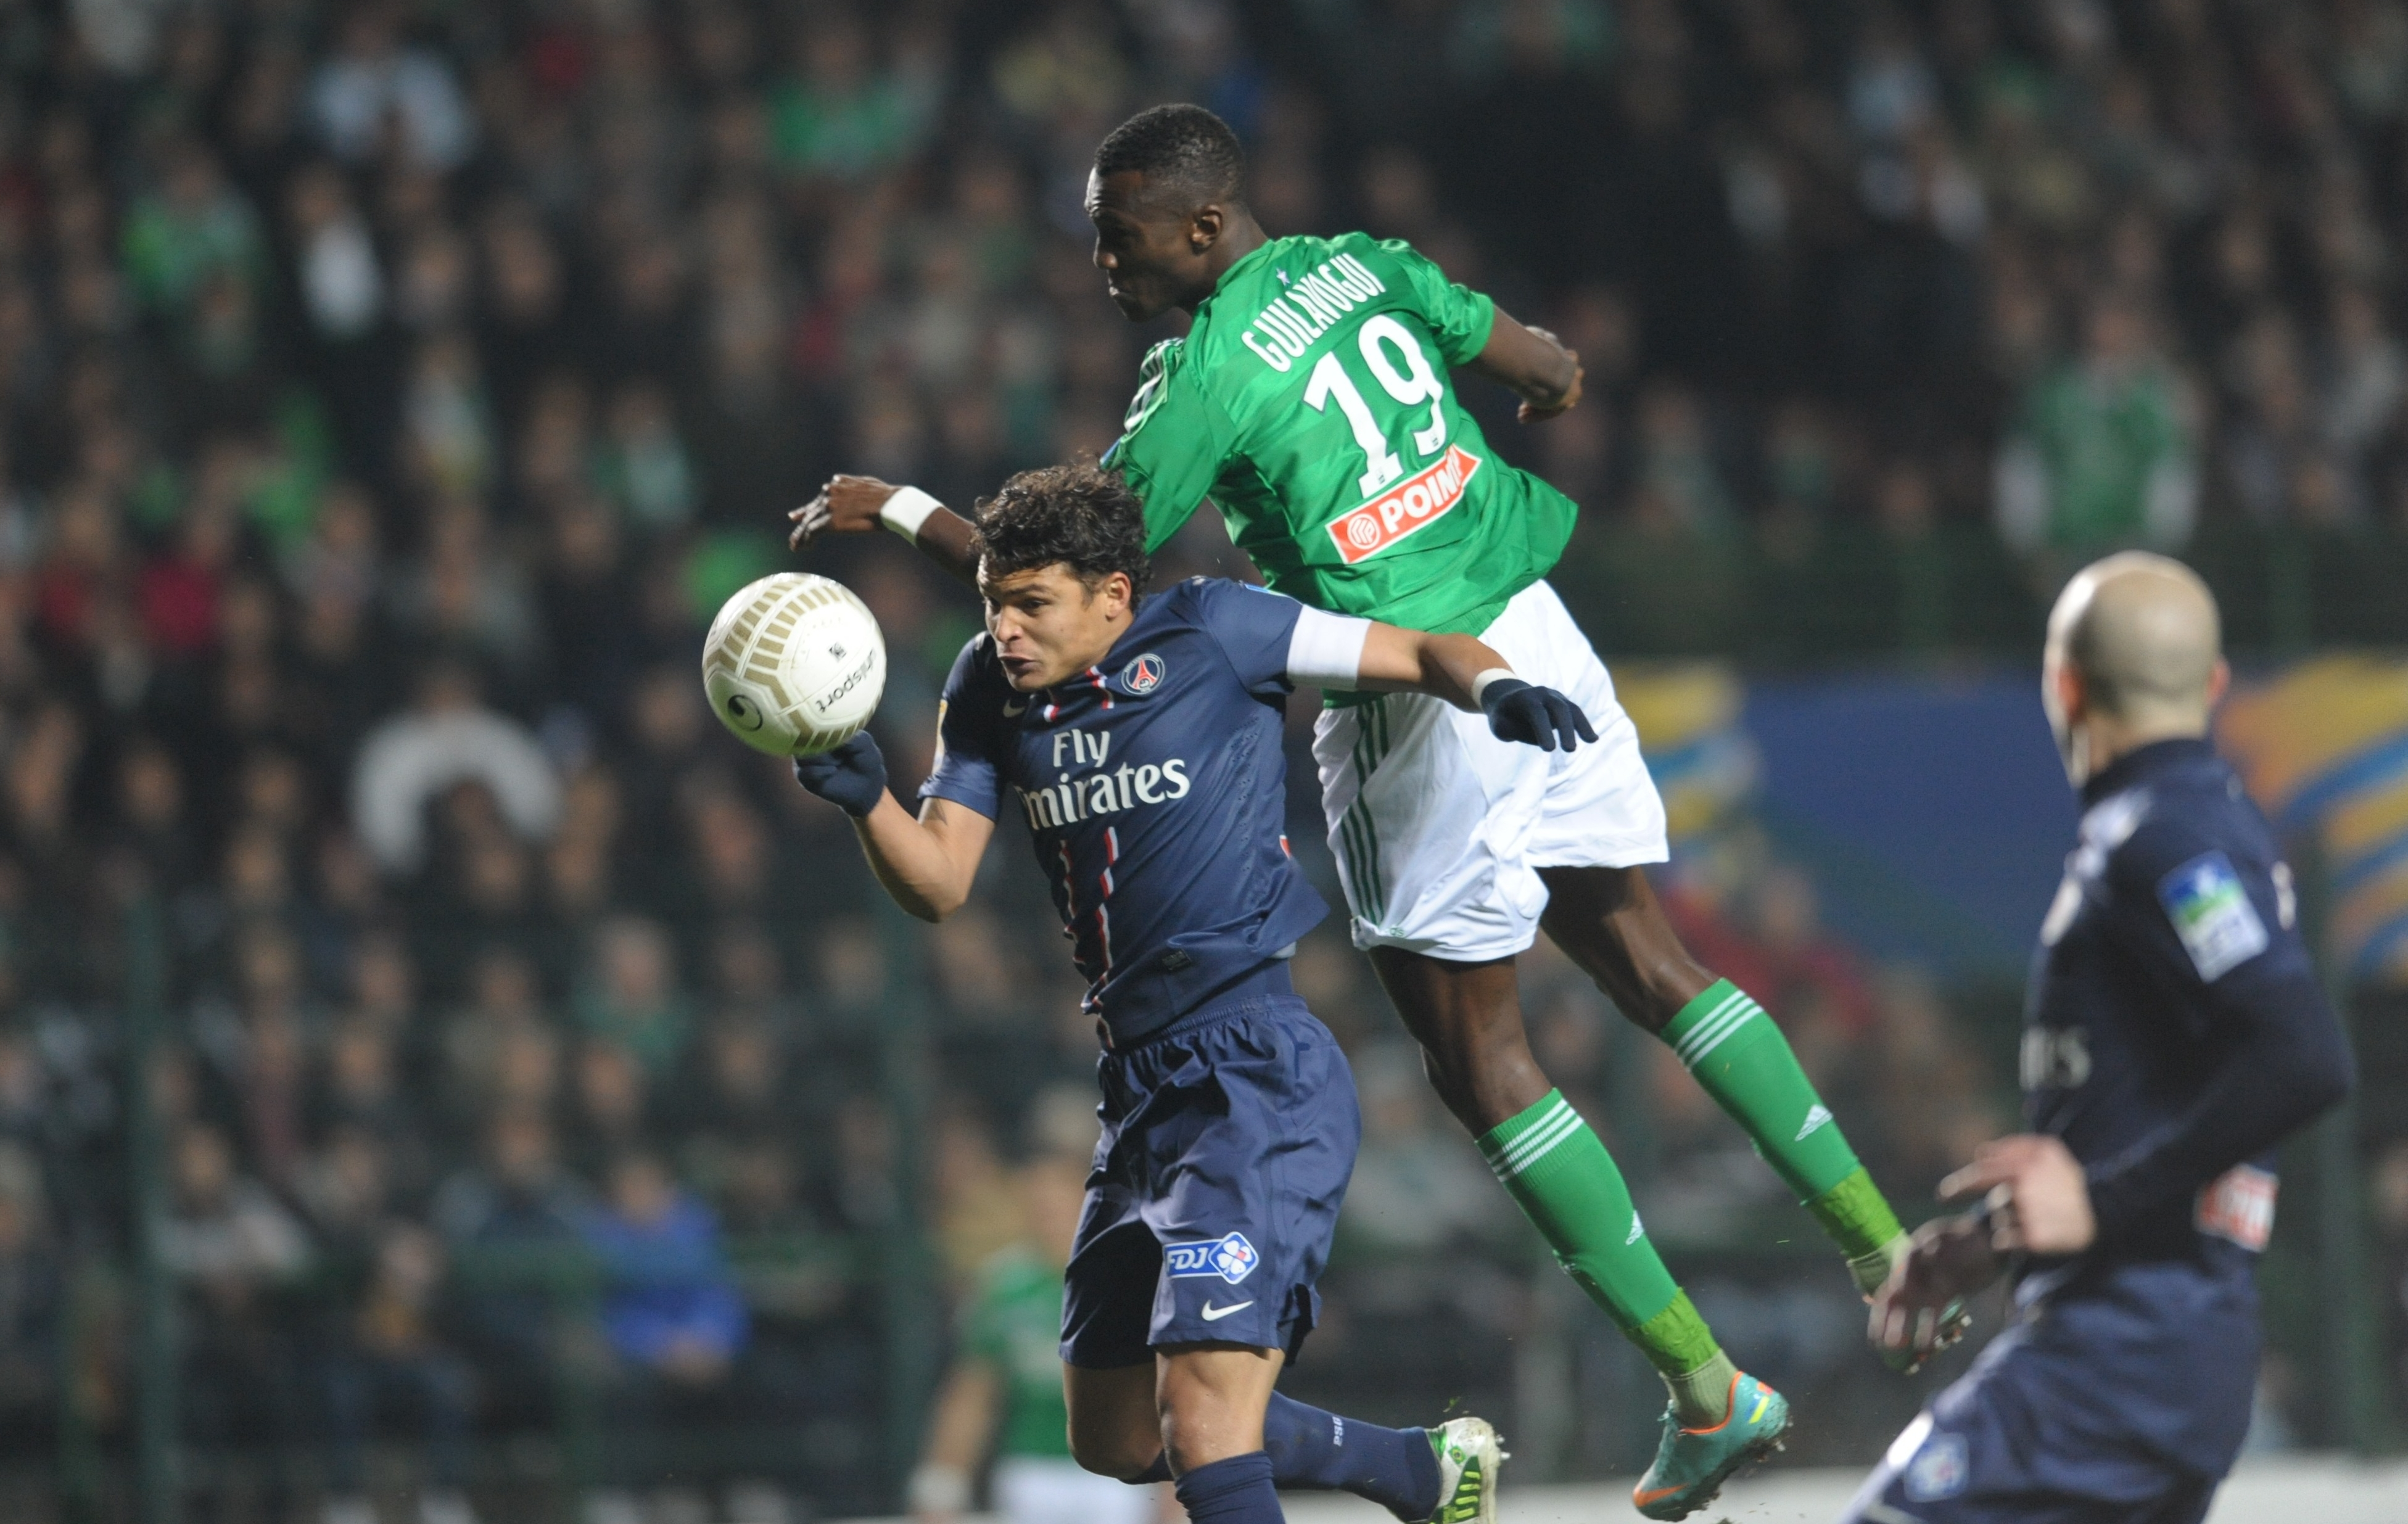 Saint etienne au bout du suspense coupe de la ligue - Saint etienne paris coupe de la ligue ...